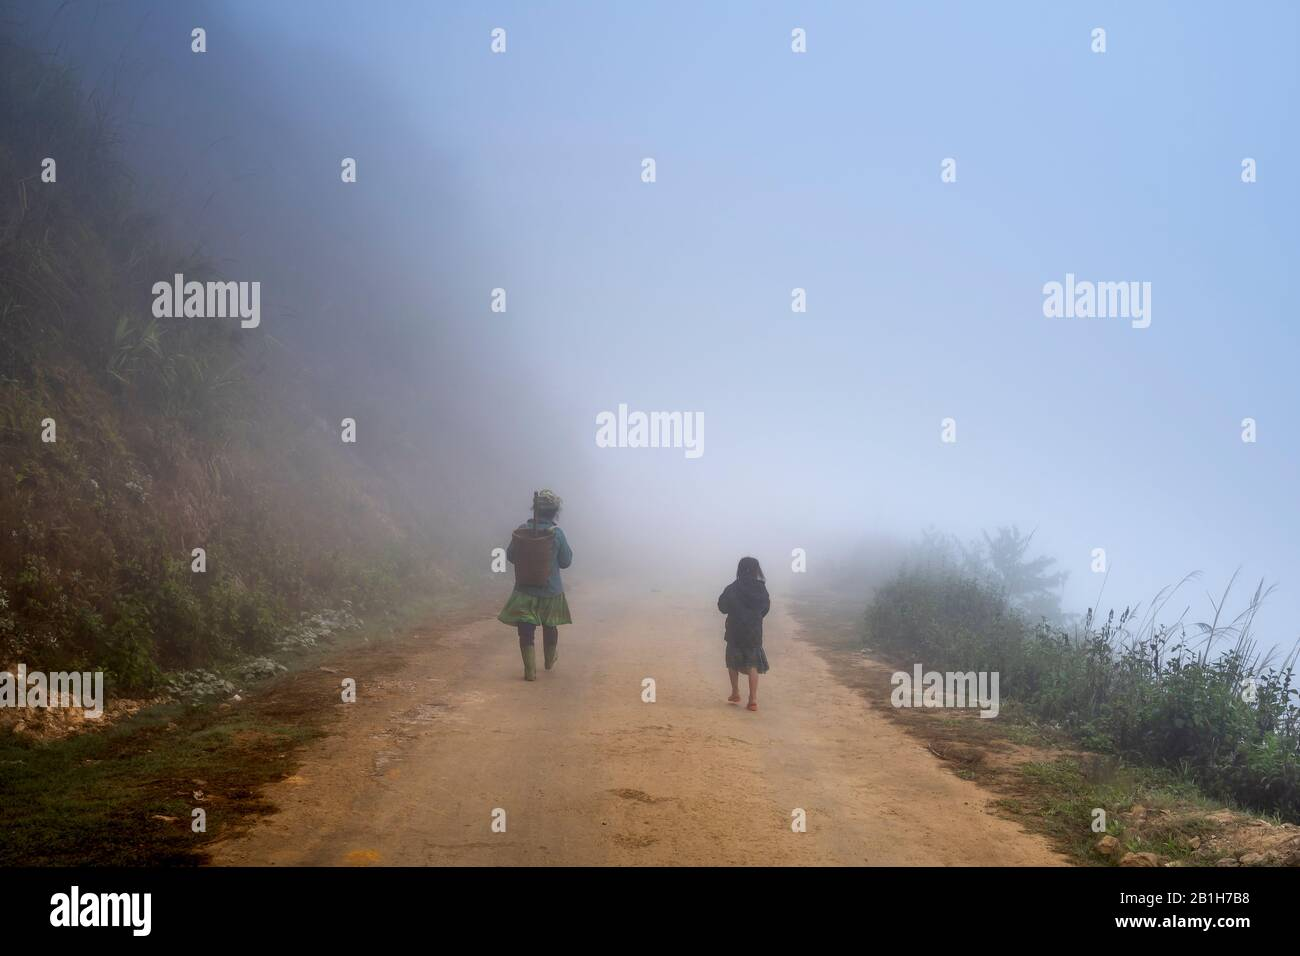 Ta Xua, Son La province, Vietnam - January 22, 2020: The H'mong ethnic woman walking on the village road in fog in Ta Xua, Son La province, Vietnam Stock Photo